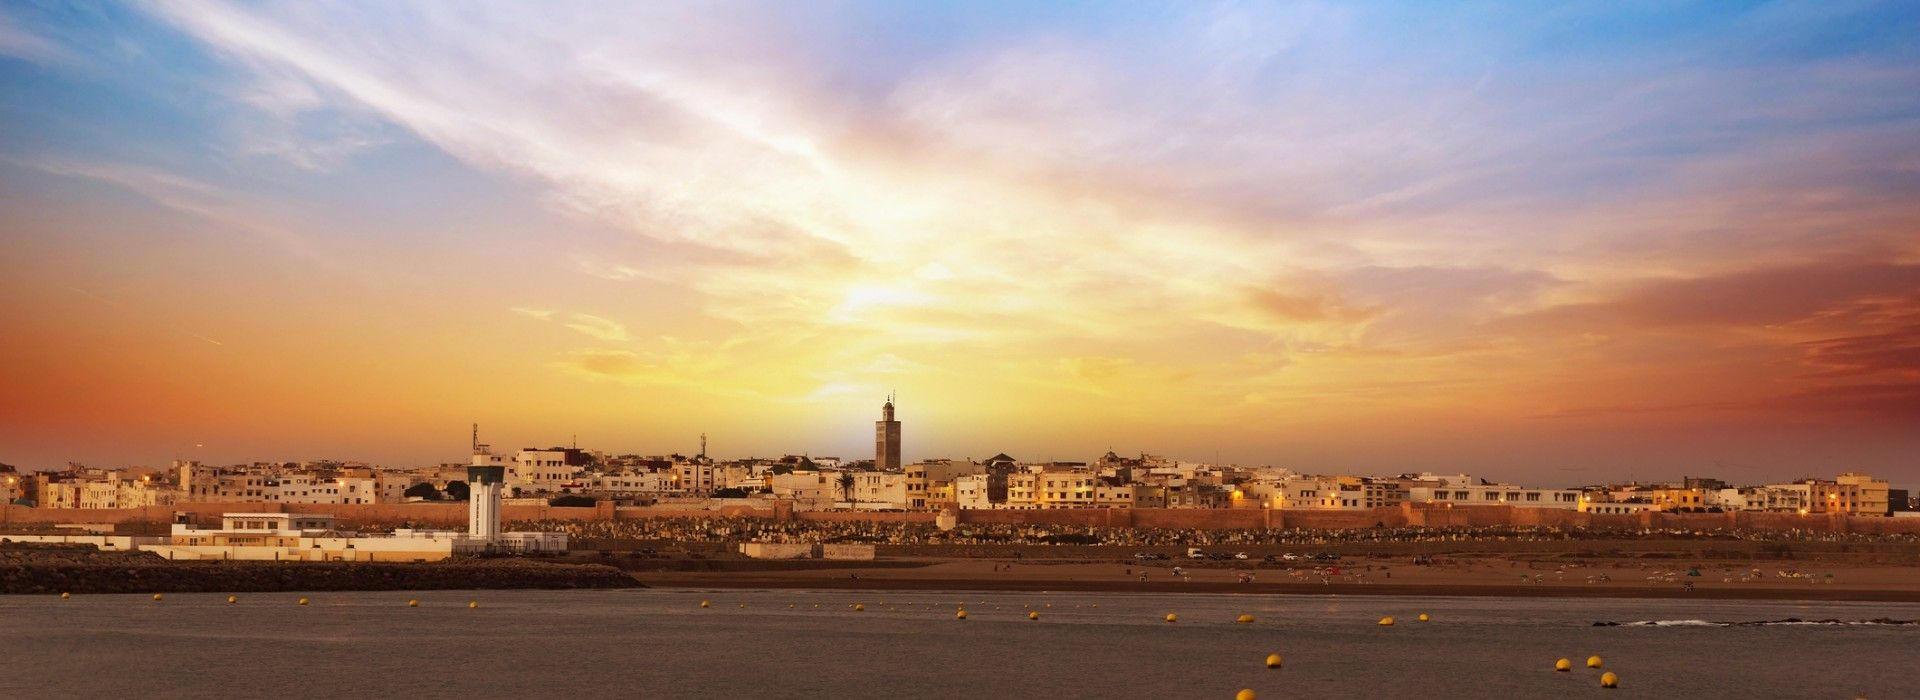 City sightseeing Tours in Marrakesh